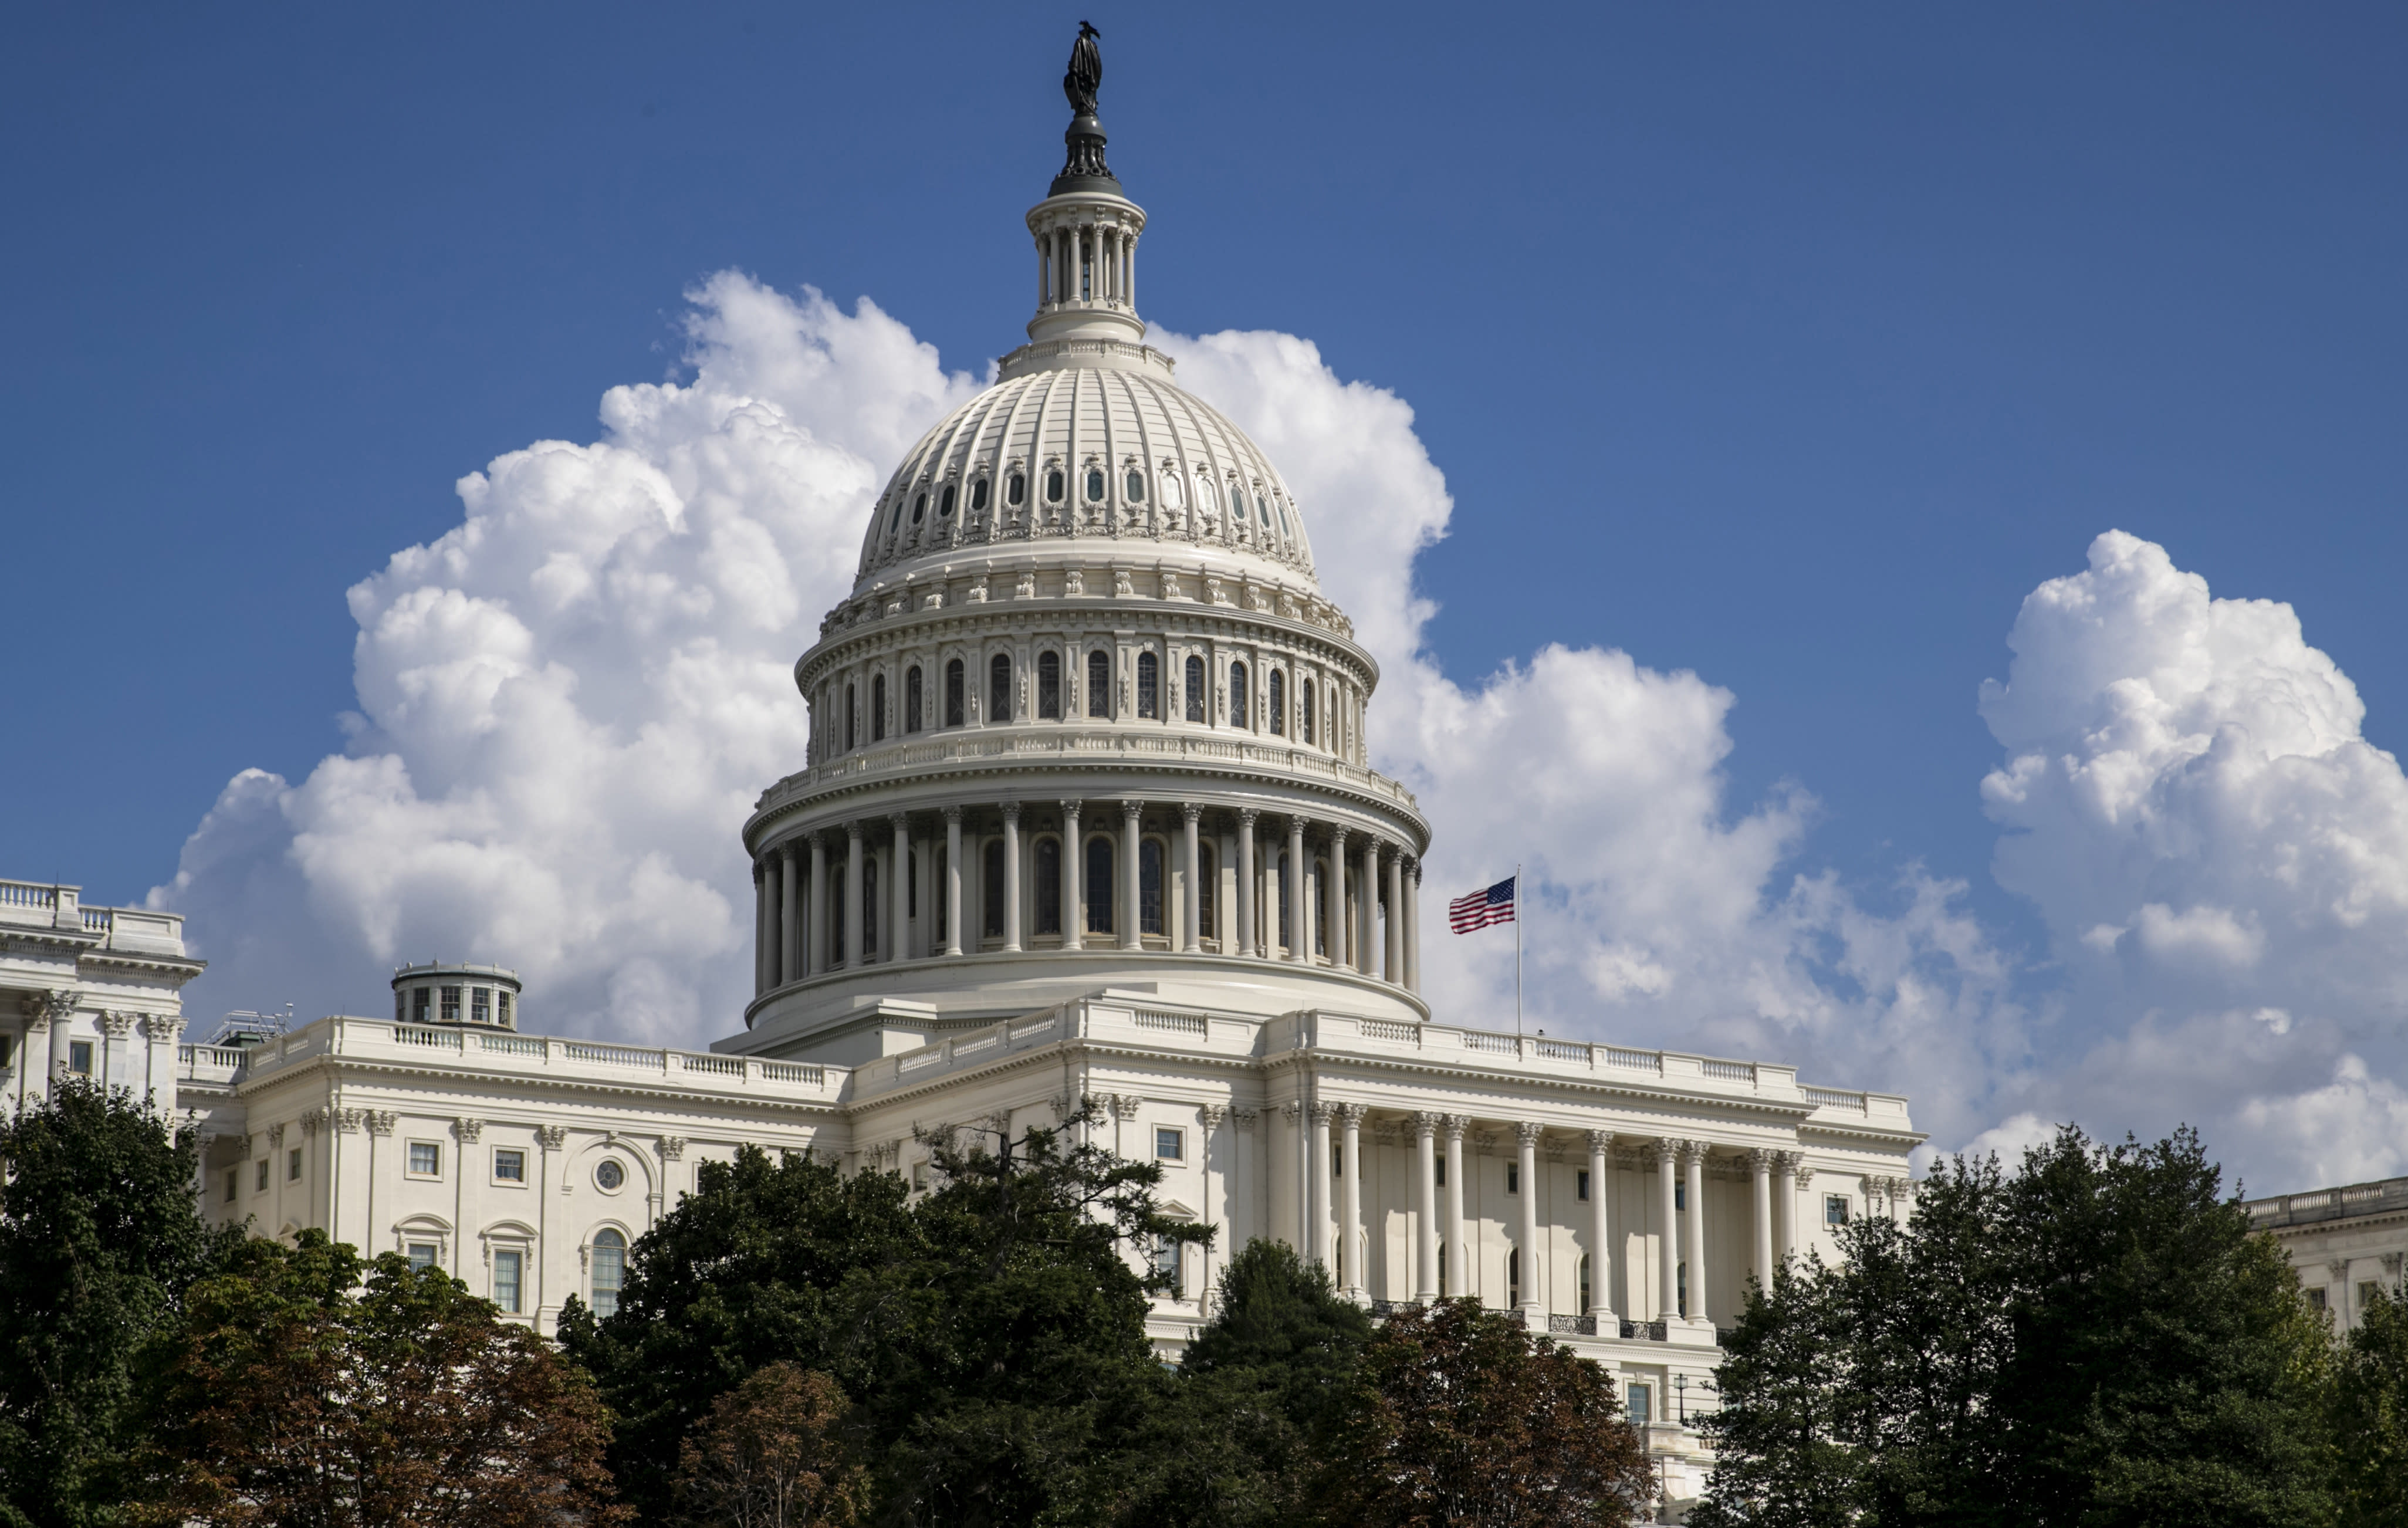 an analysis of the us government running on deficit How planned fed rate increases impact the national debt & deficits the united states national debt is currently about $20 trillion, and the federal government is paying some of the lowest .